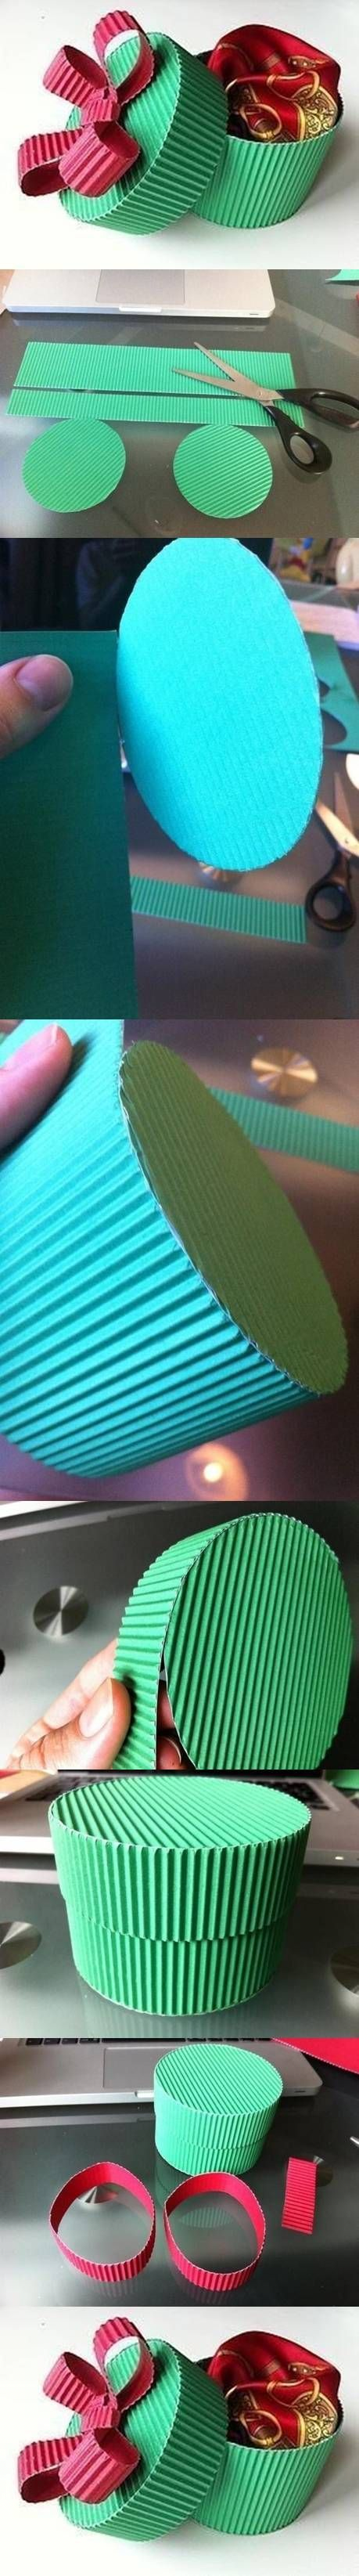 How to make pretty Corrugated boxes step by step DIY tutorial instructions / How To Instructions